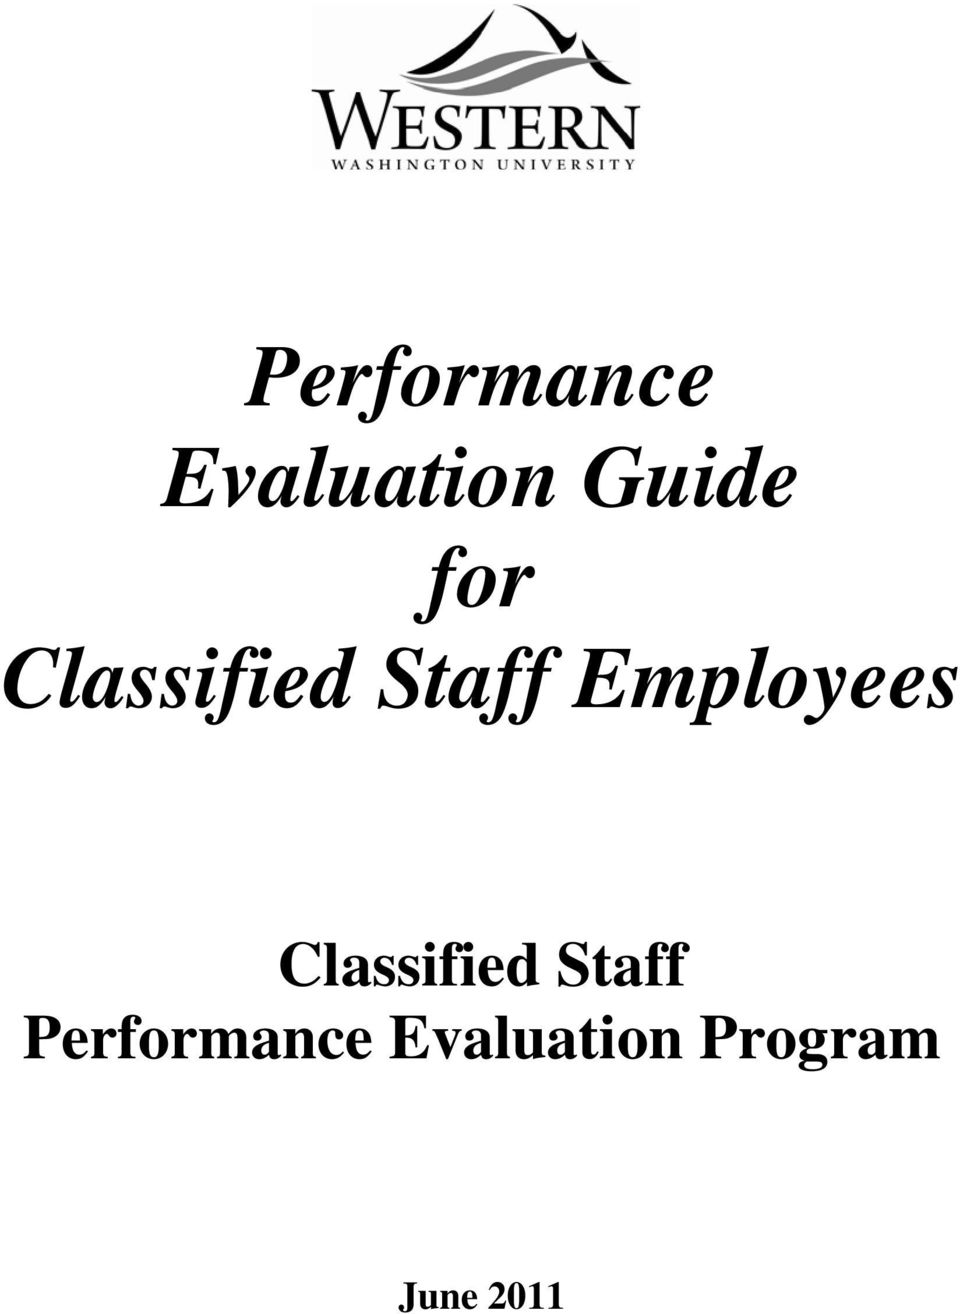 Employees Classified Staff